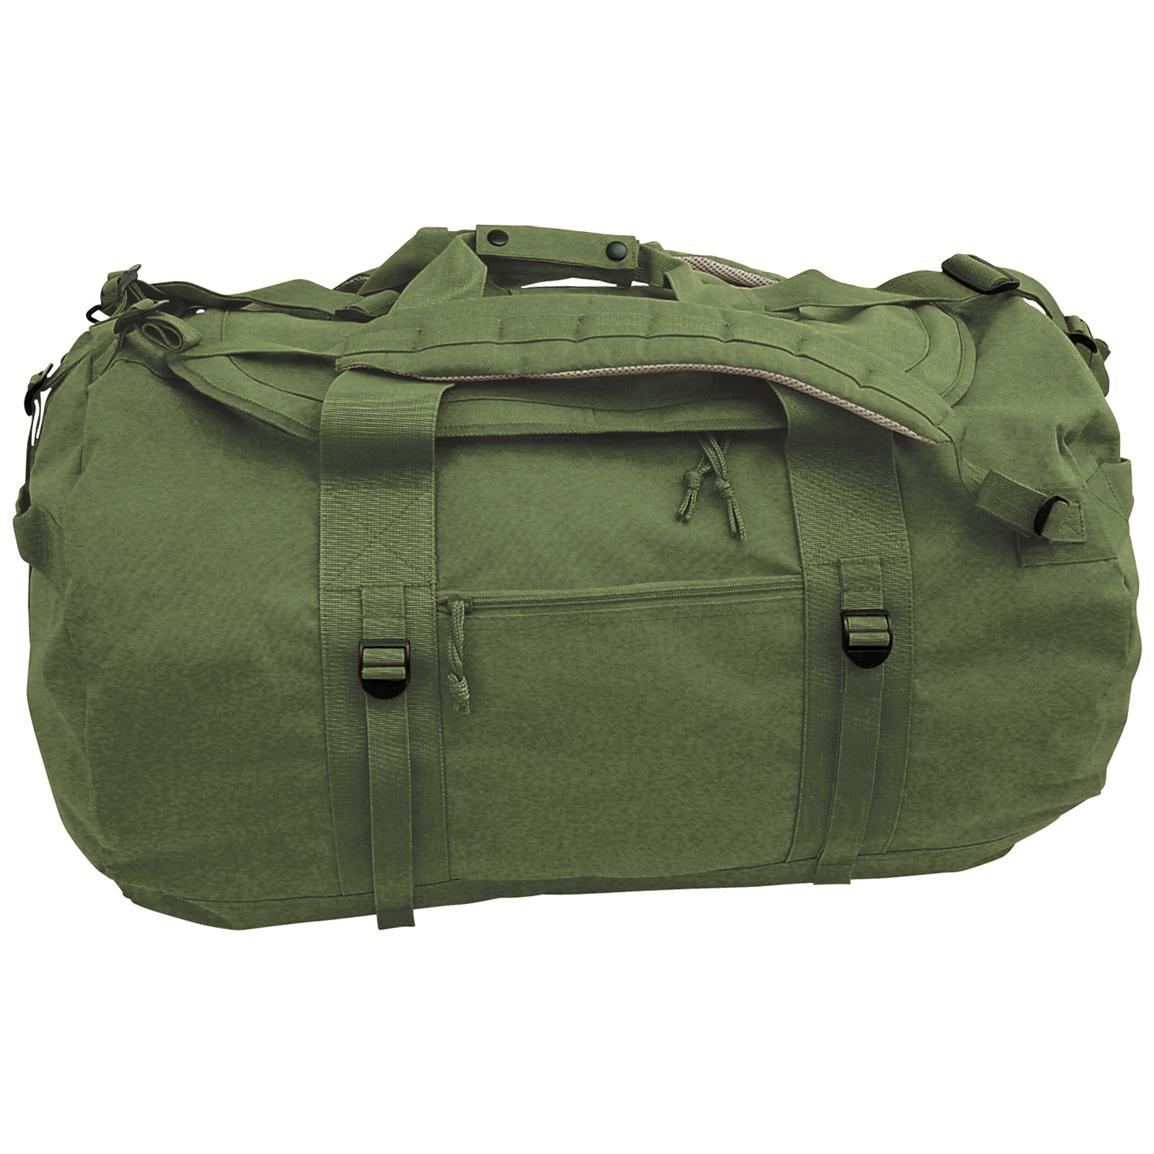 Voodoo Tactical™ Mammoth Deployment Bag, Olive Drab